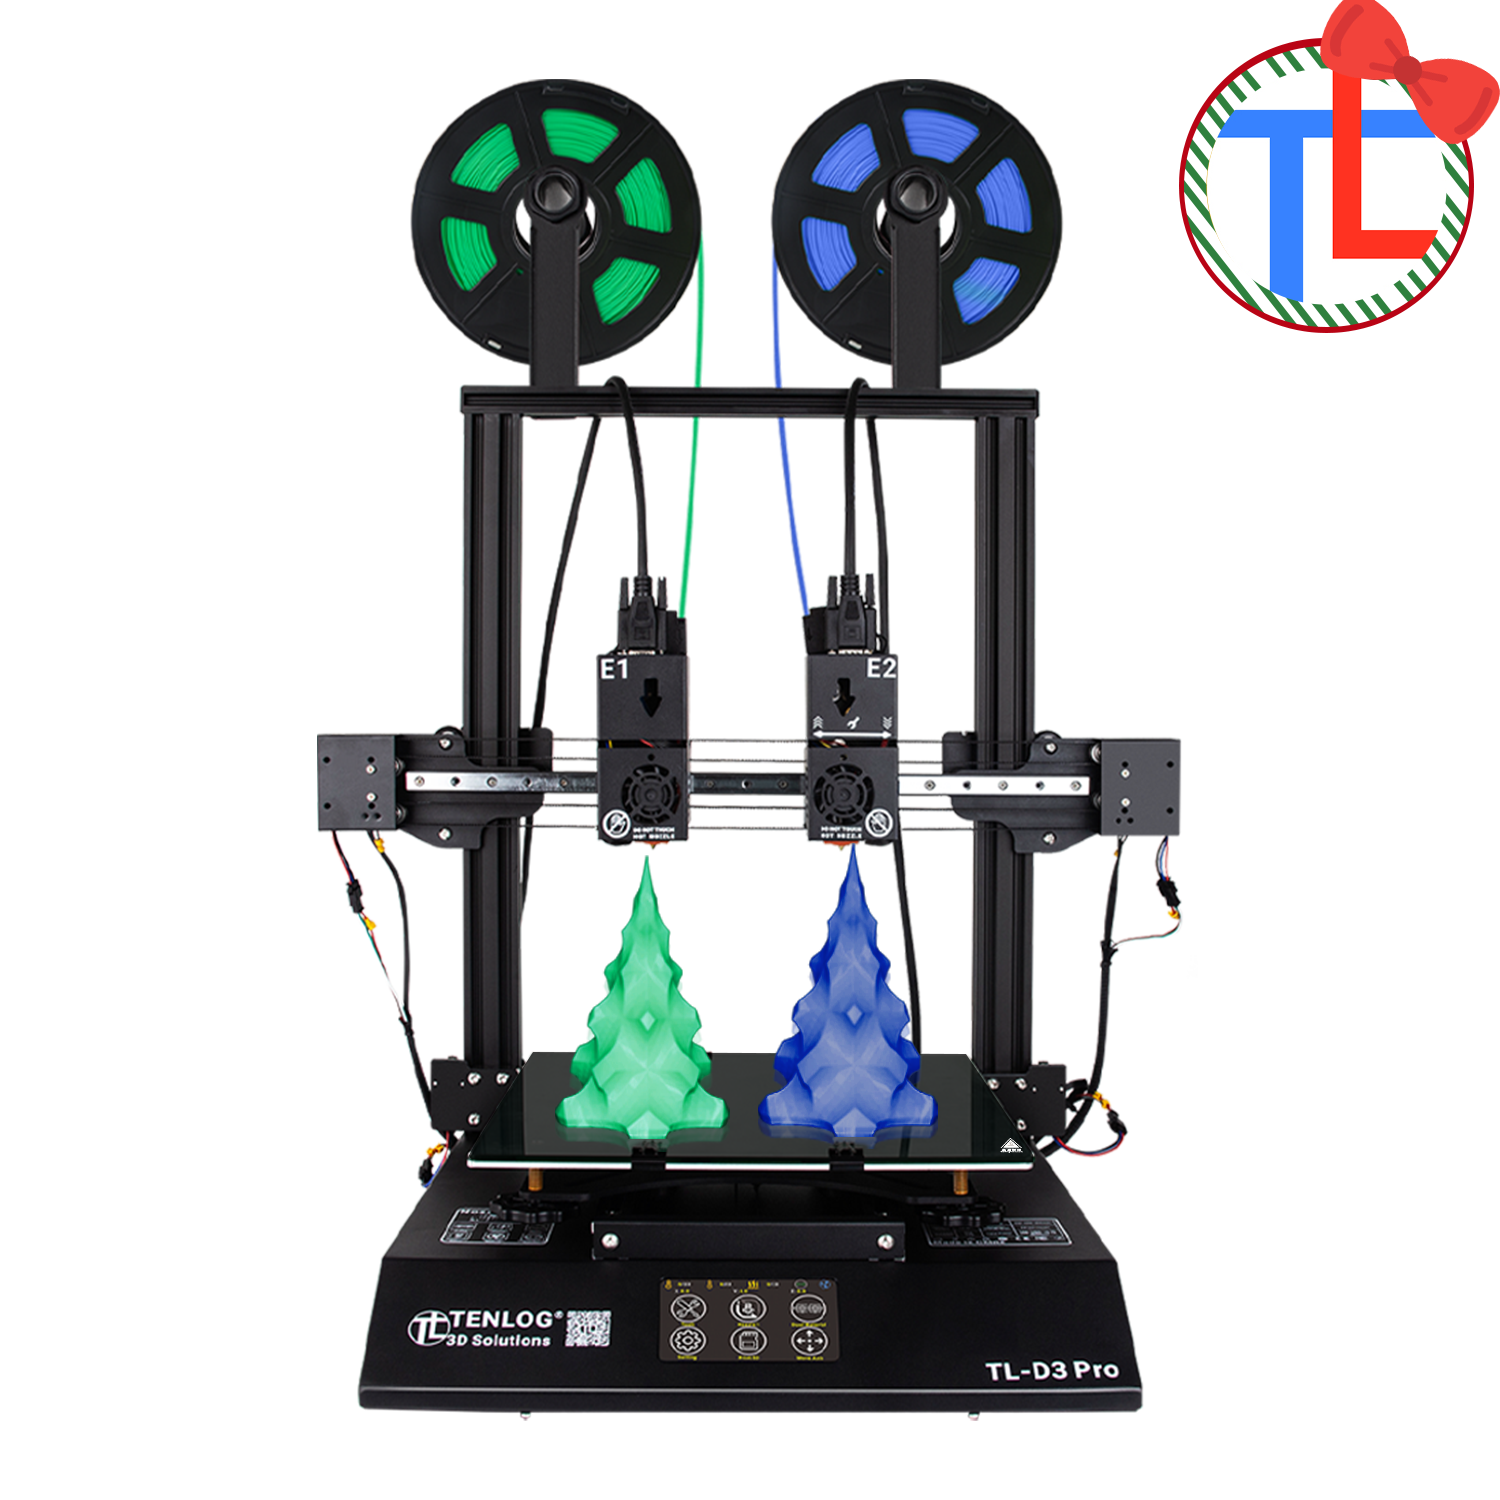 Merry Christmas, TL-D3 Pro USD $120 OFF, Get IDEX 3D Printer Now